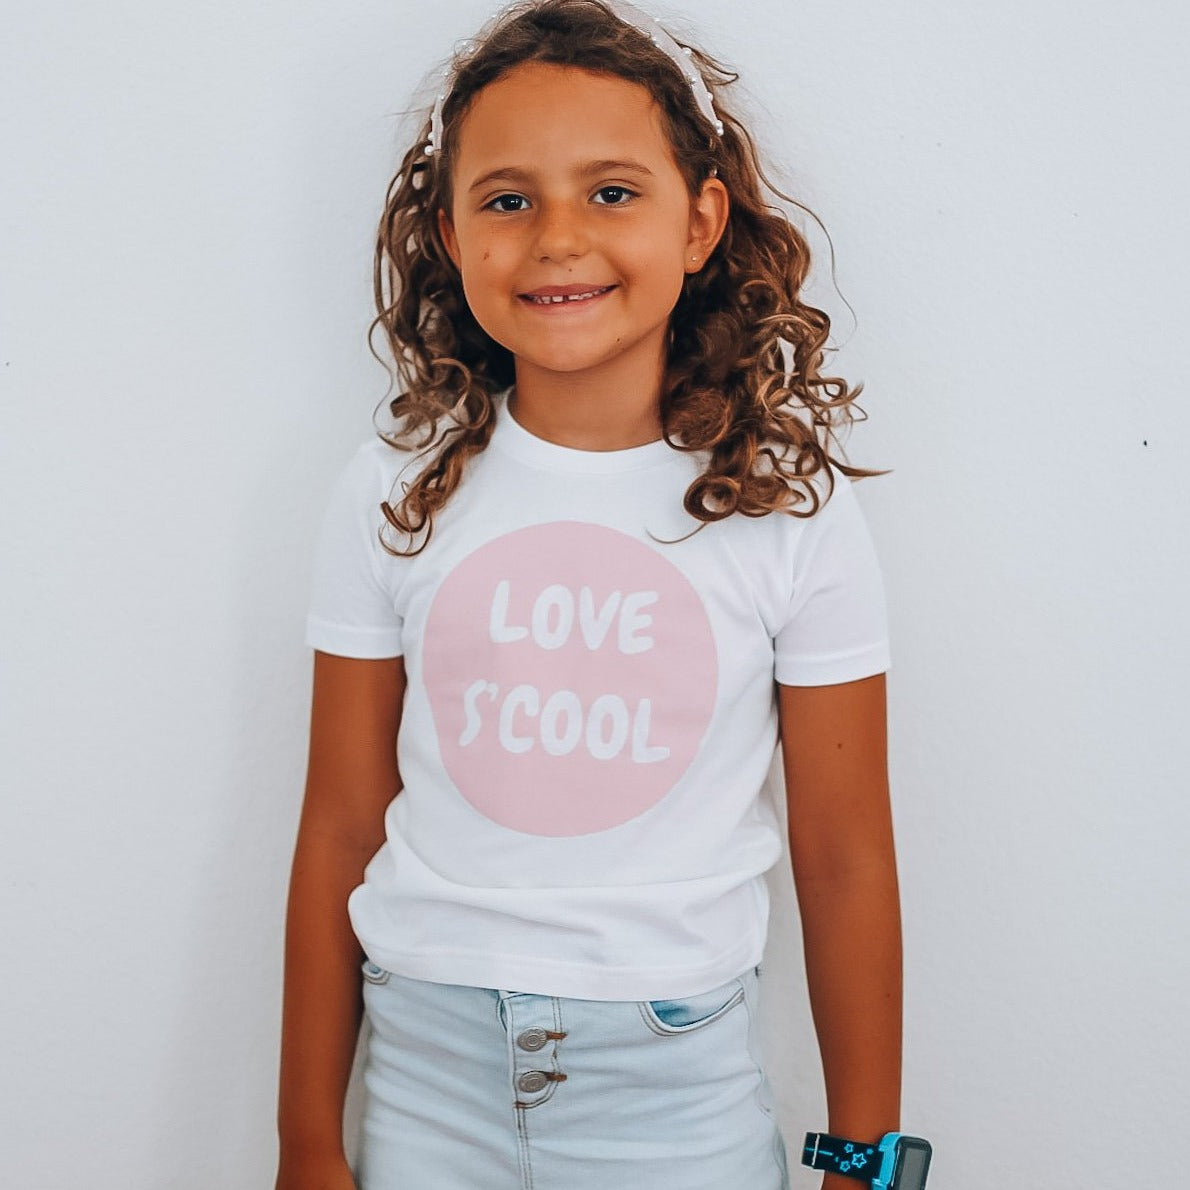 LOVE  S'COOL  -  Toddler & Youth  T-Shirt